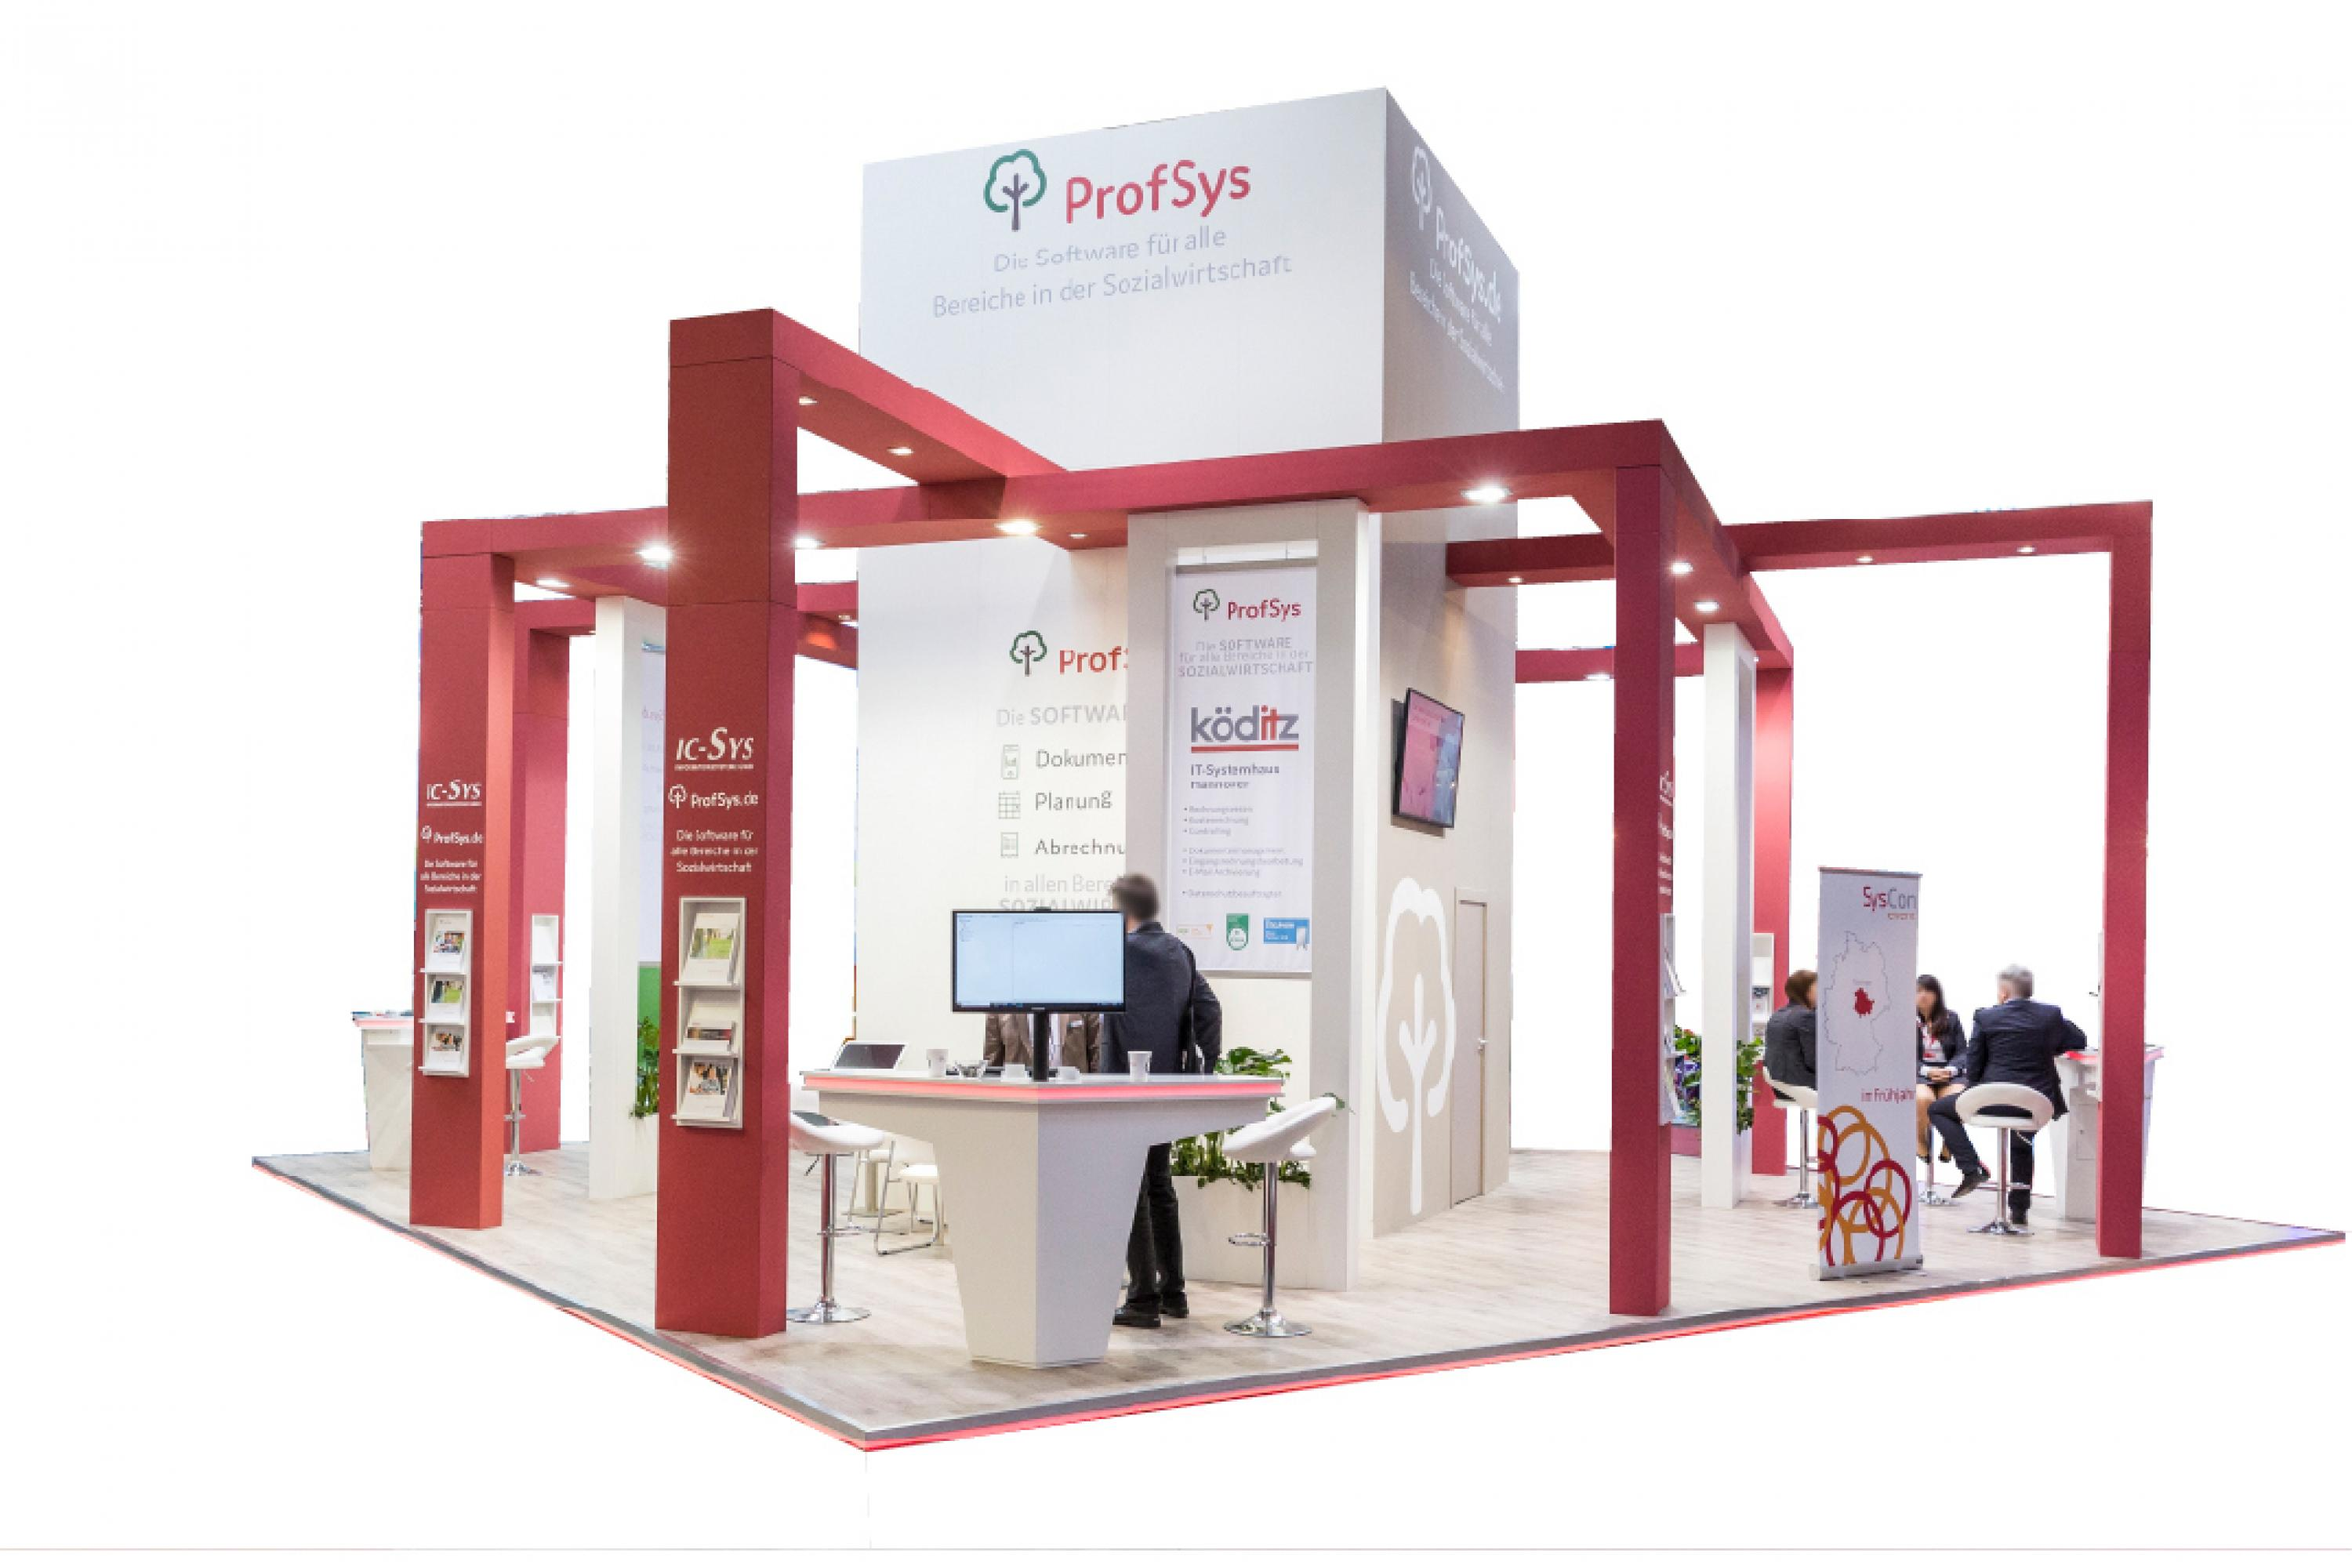 ProfSys-Messestand-Design-FORMLOS-Berlin-design